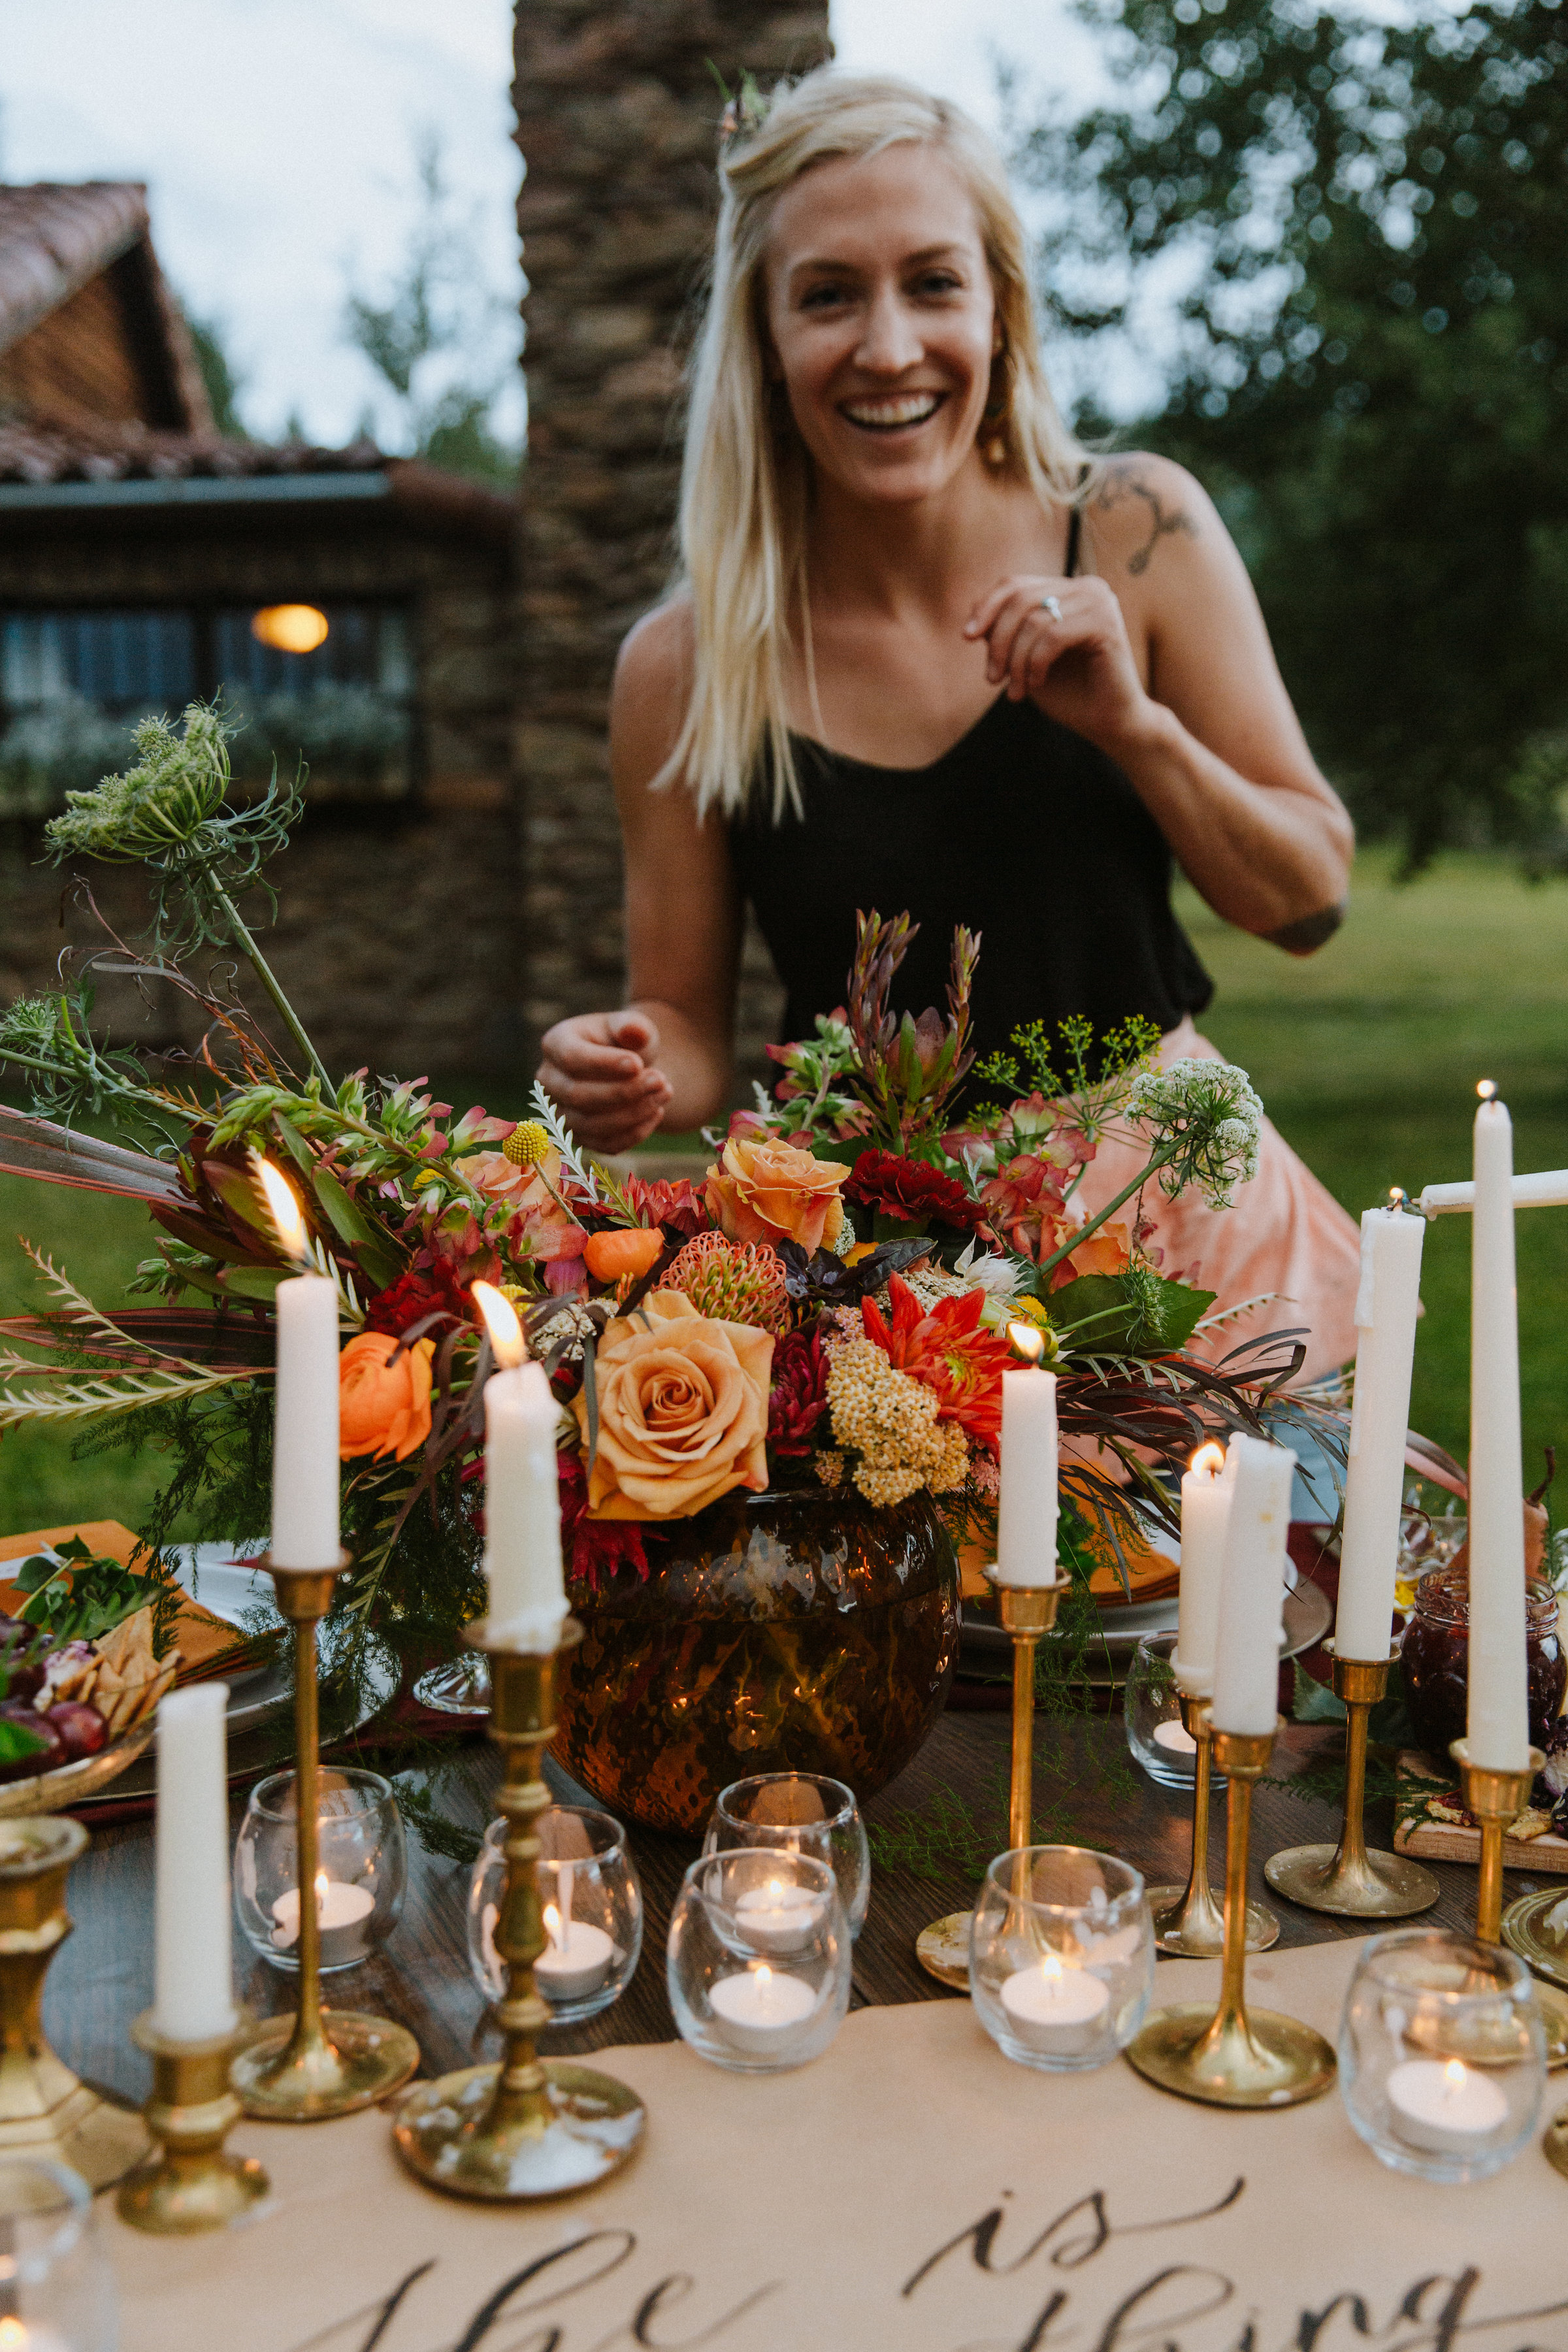 Private Workshop - Girl's night out or a bachelorette party? Do you want to learn how to arrange flowers just for fun? We want to help you party. Any occasion we can bring some fun and flowers into your night.